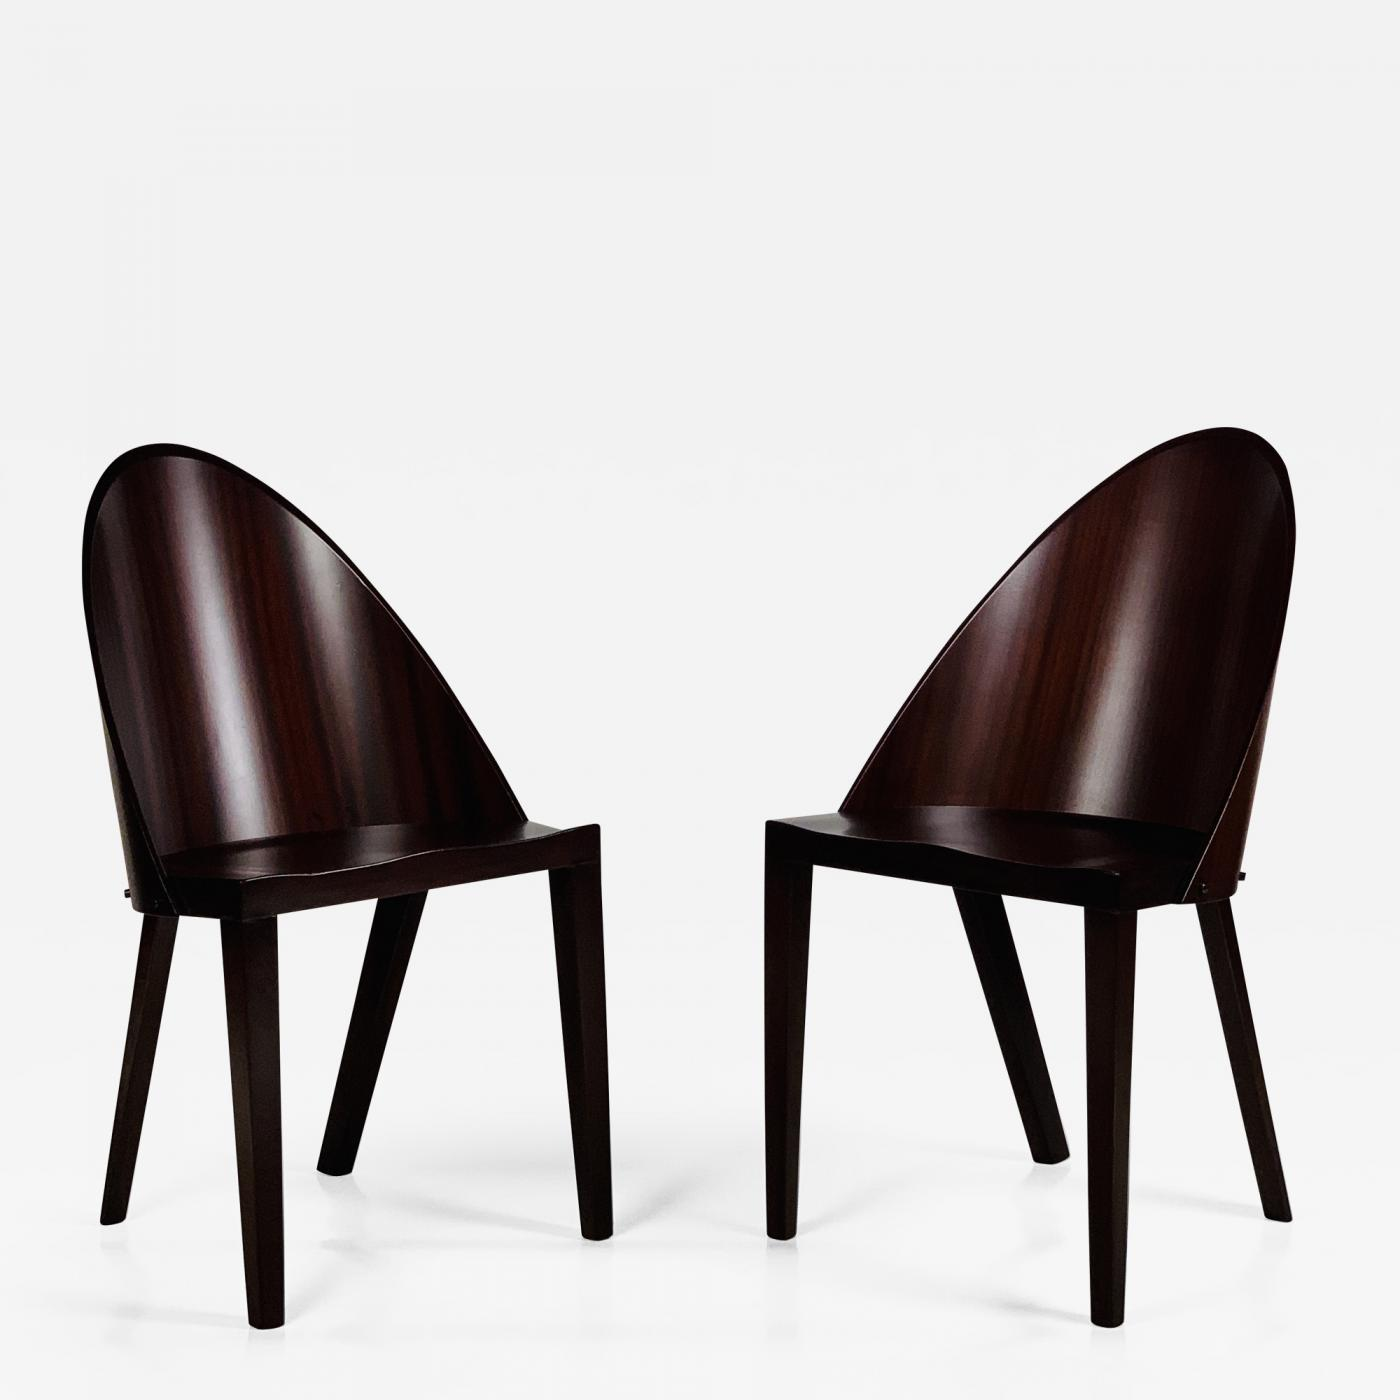 Philippe Starck Rare Pair Of Philippe Starck Chairs From The Royalton Hotel Nyc